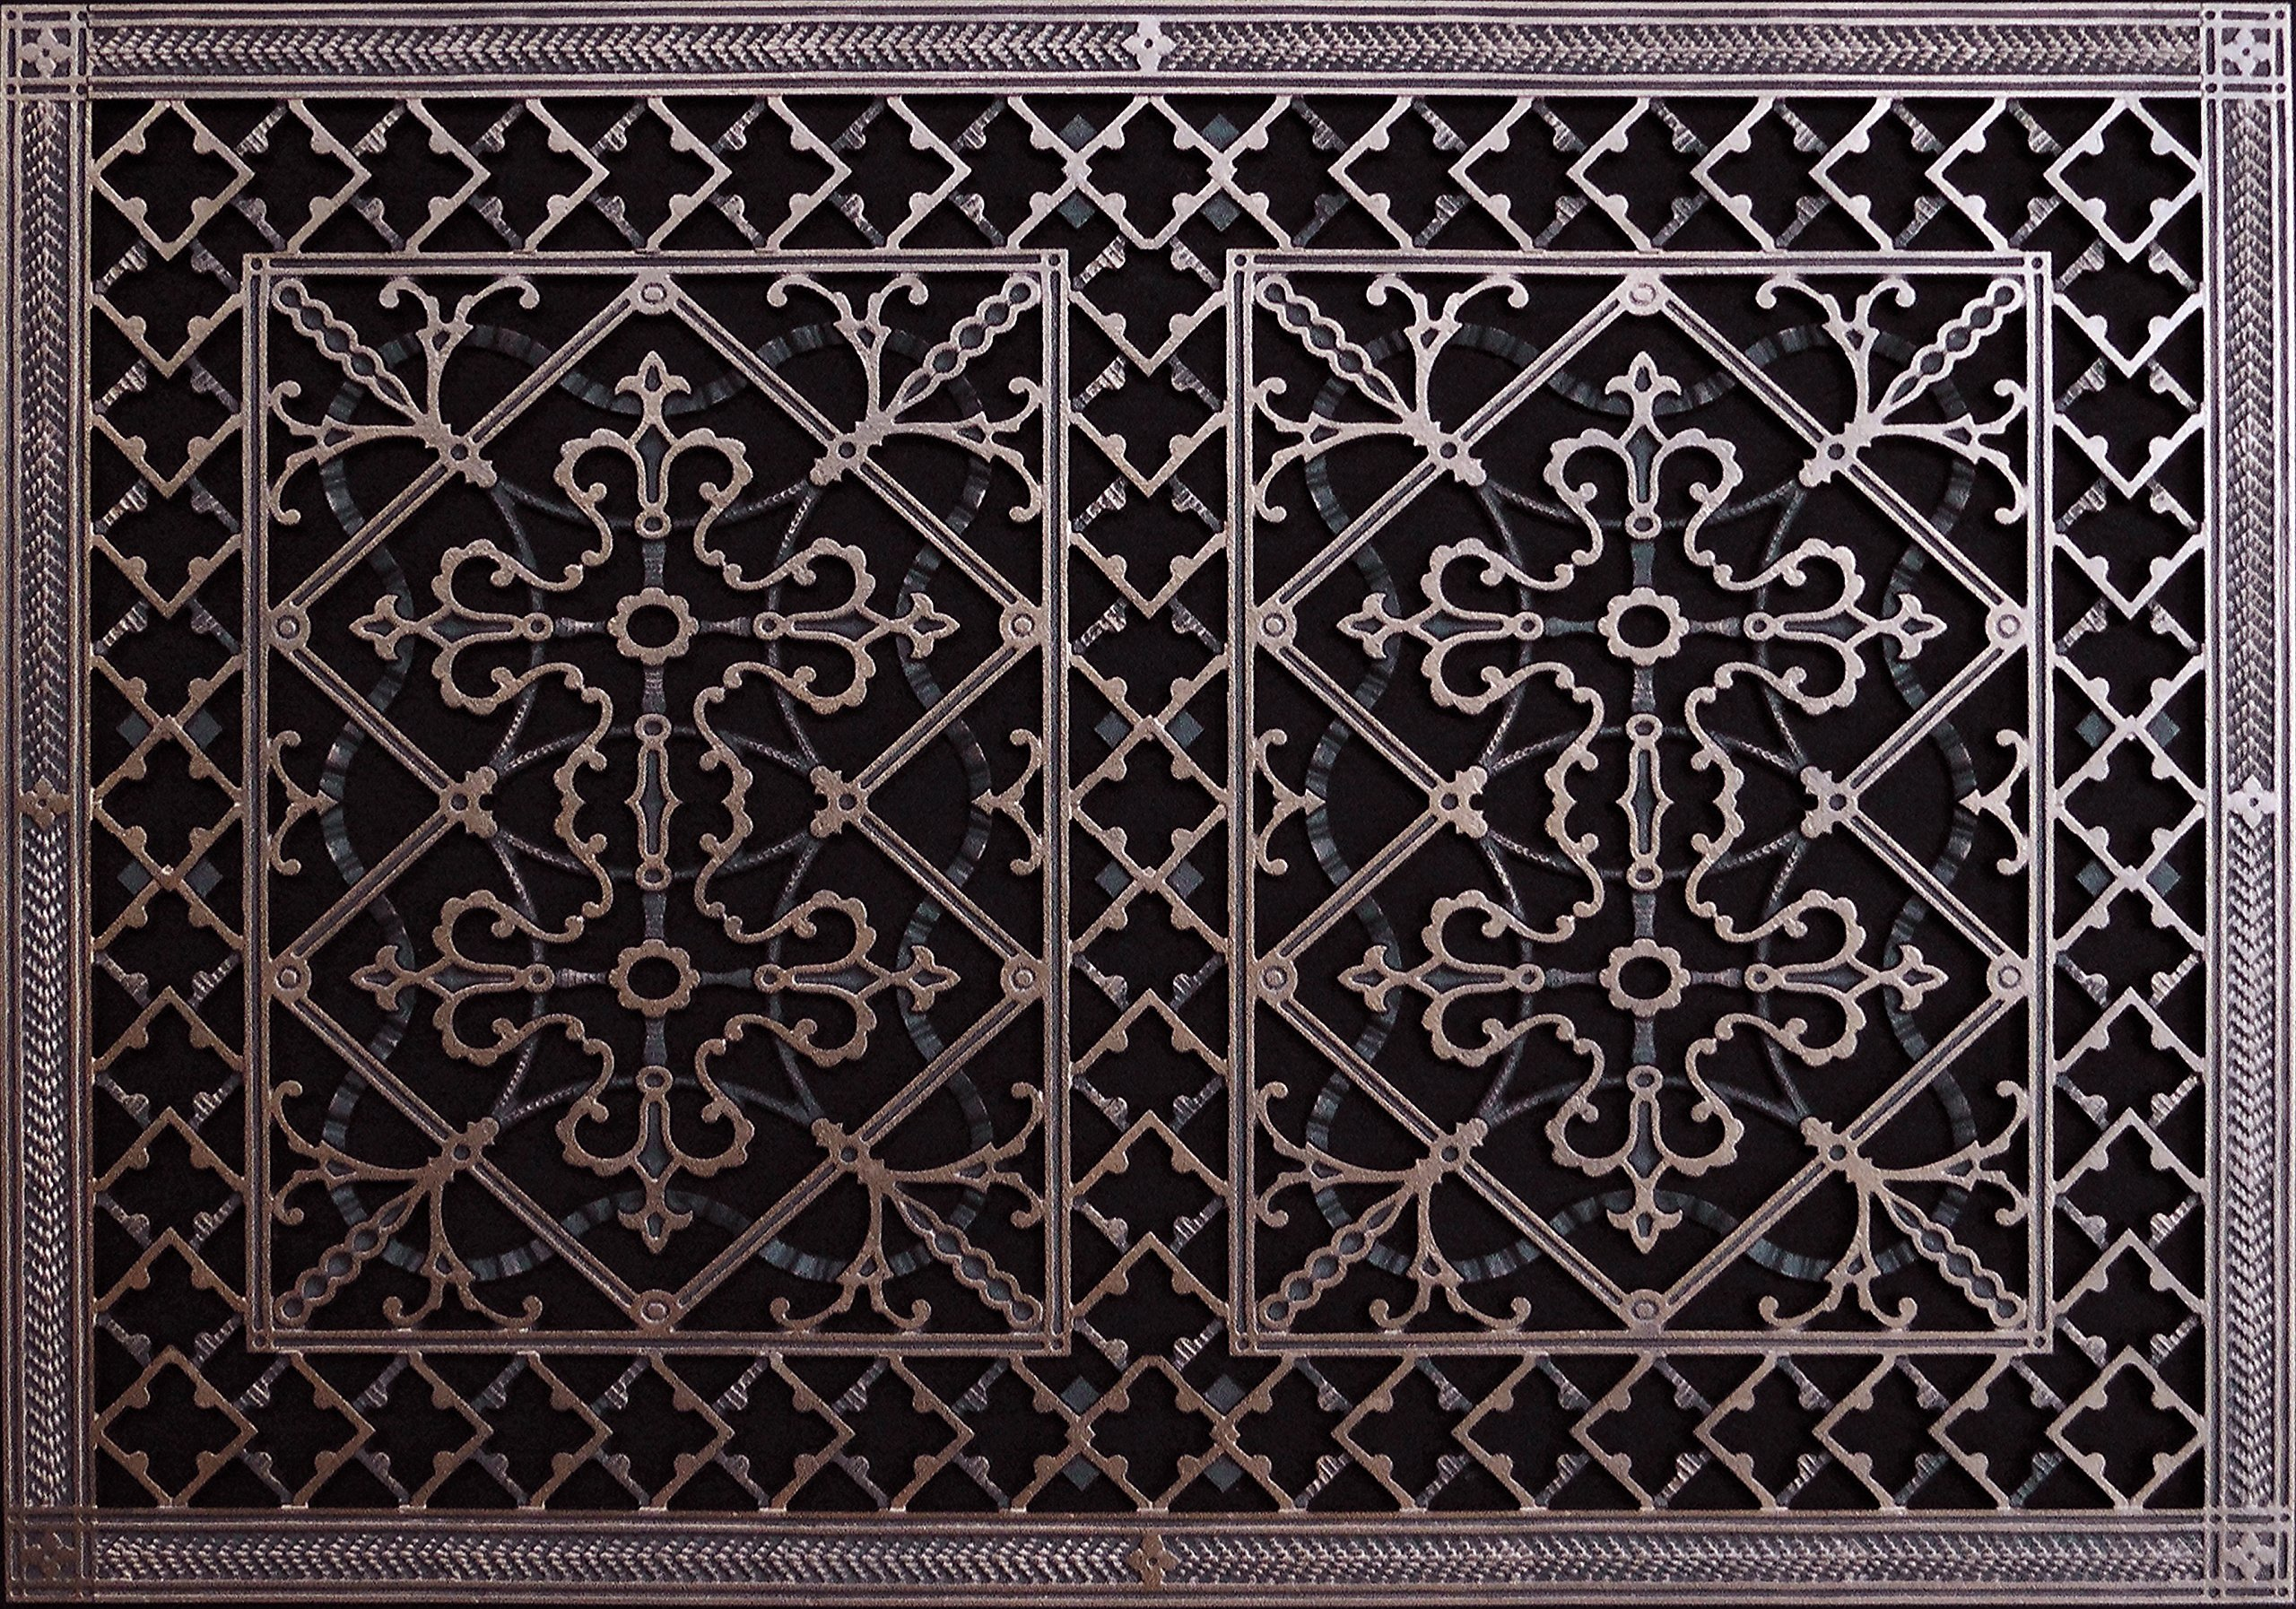 """Decorative Grille, Vent Cover, or Return Register. Made of Urethane Resin to fit over a 20''x30'' duct or opening. Total size of vent is 22""""x32''x3/8'', for wall and ceiling grilles (not for floor use)."""